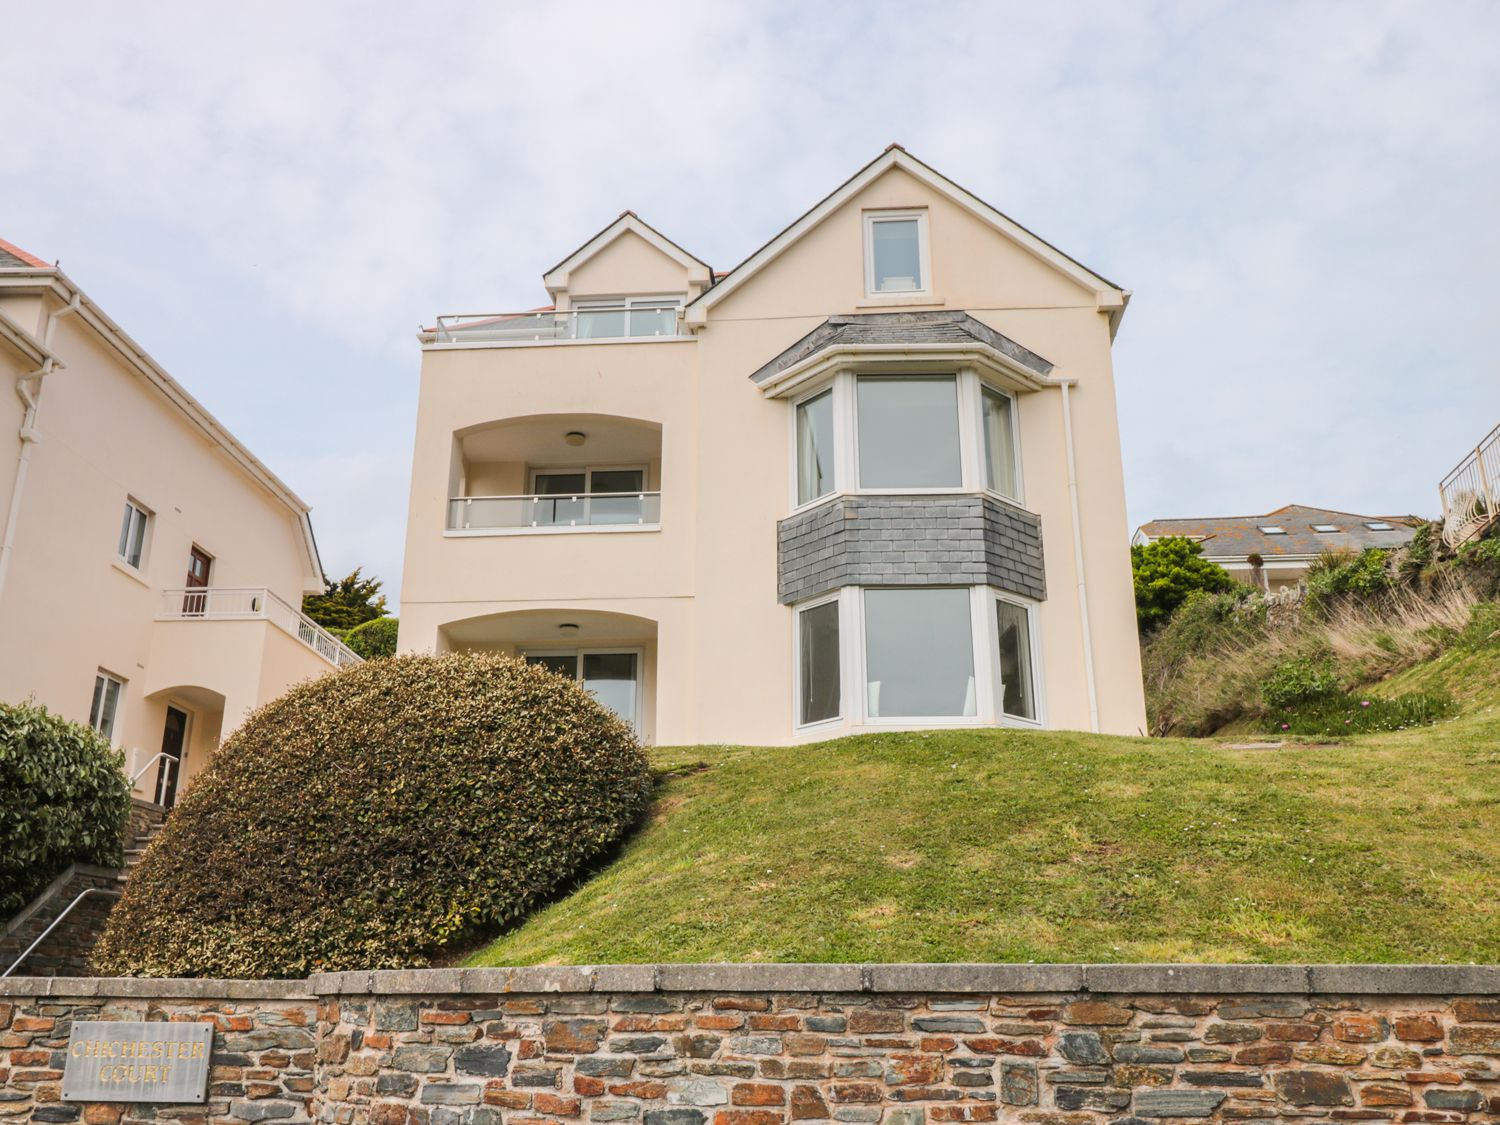 6 Chichester Court - Devon - 995123 - photo 1